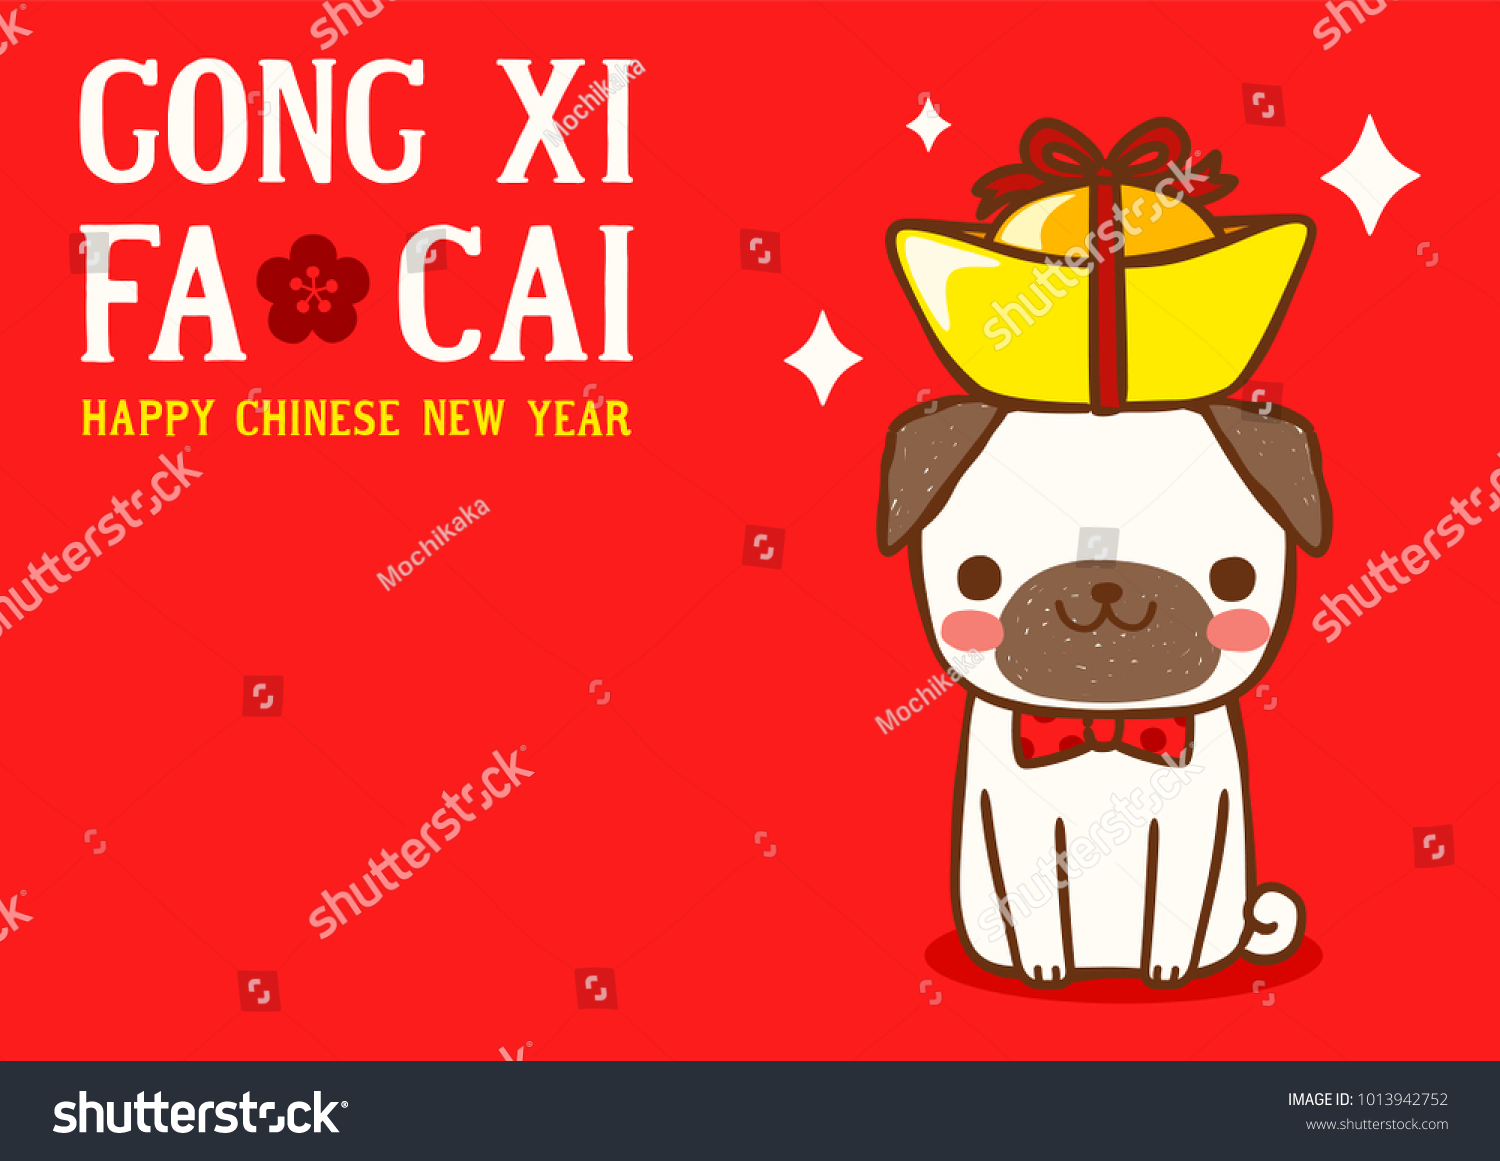 Happy chinese new year cute cartoon stock vector royalty free happy chinese new year with cute cartoon pug and gong xi fa cai greeting m4hsunfo